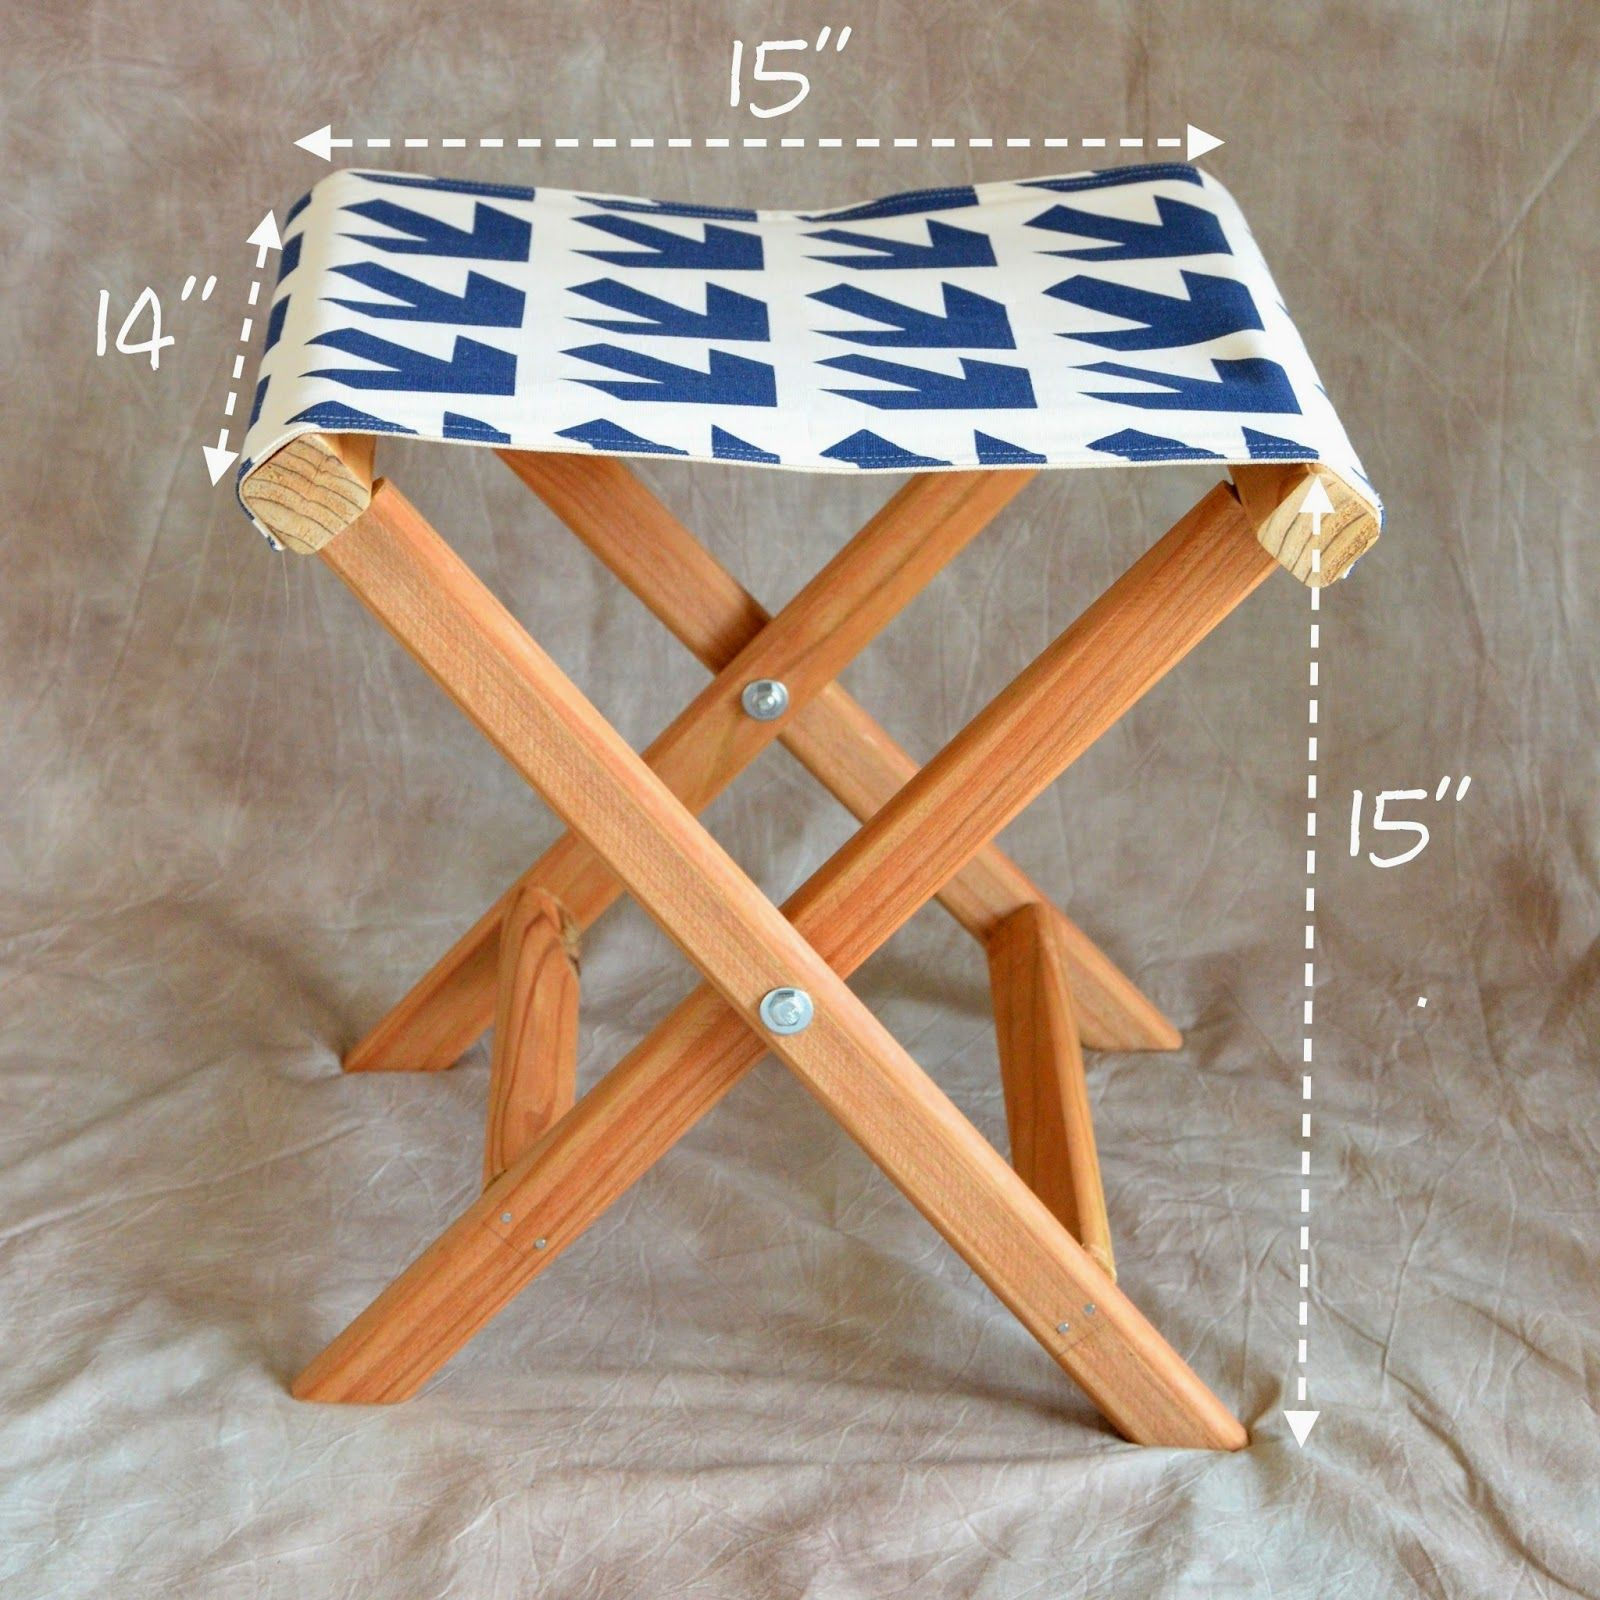 folding chair rack diy walmart butterfly ikat bag tutorial for footstool or camp stool size up